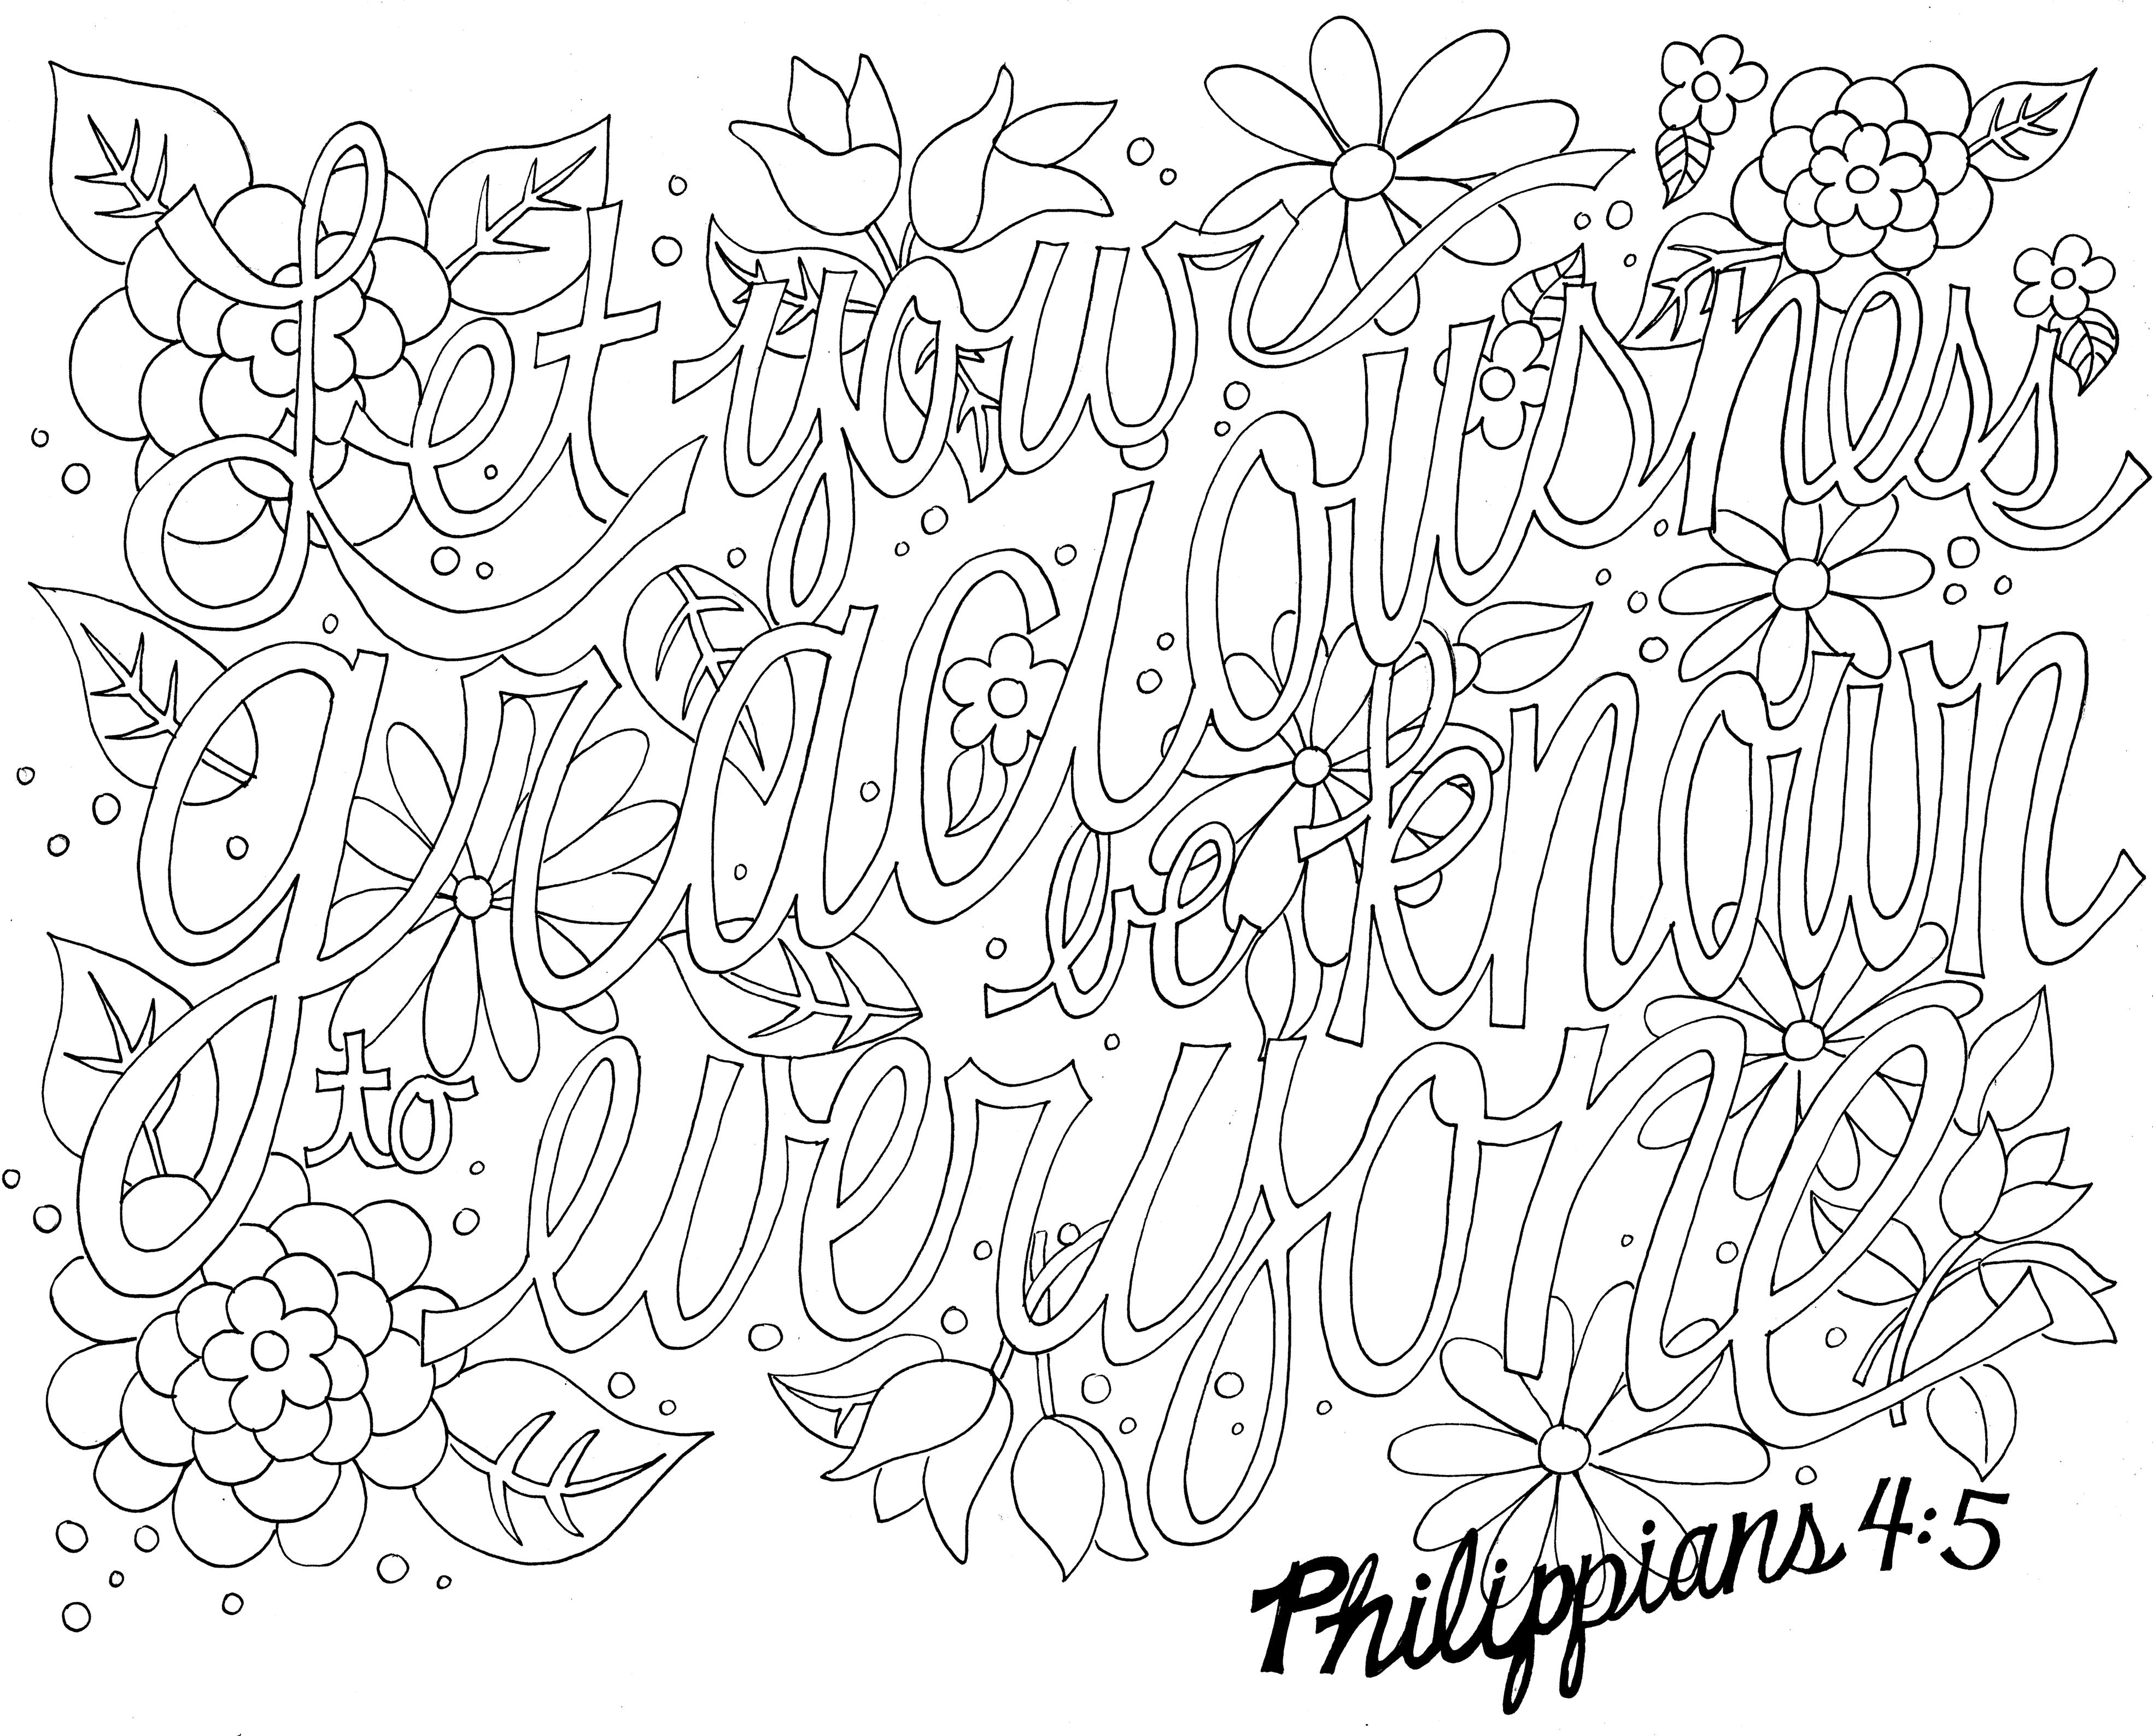 Free Bible Verse Coloring Pages At Getdrawings Free Download